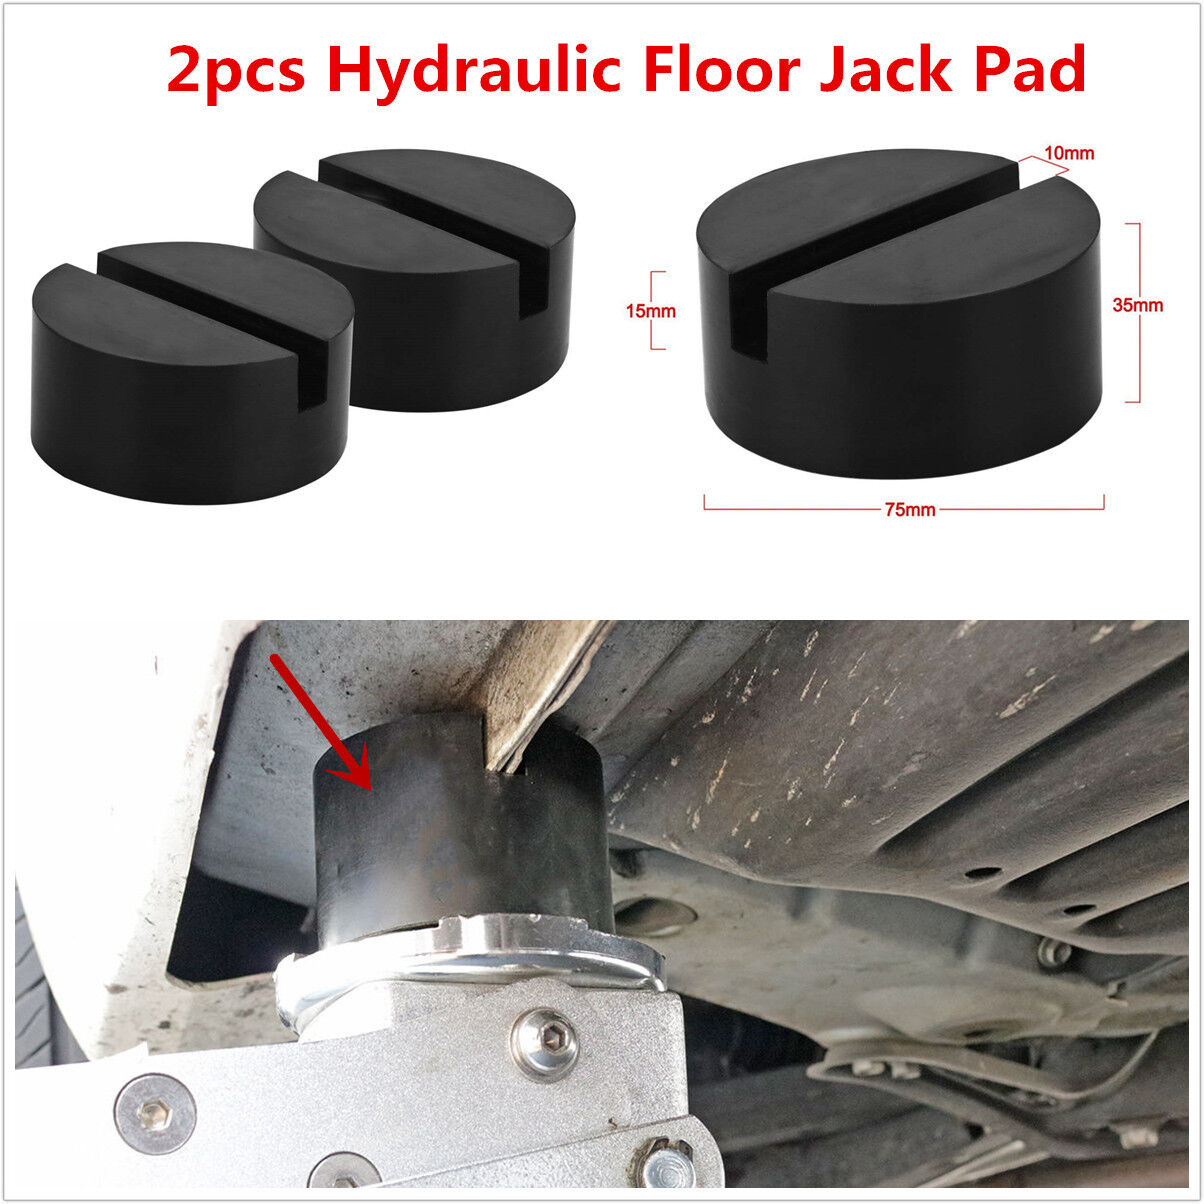 2pcs Slotted Frame Rail Floor Jack Disk Rubber Pad For